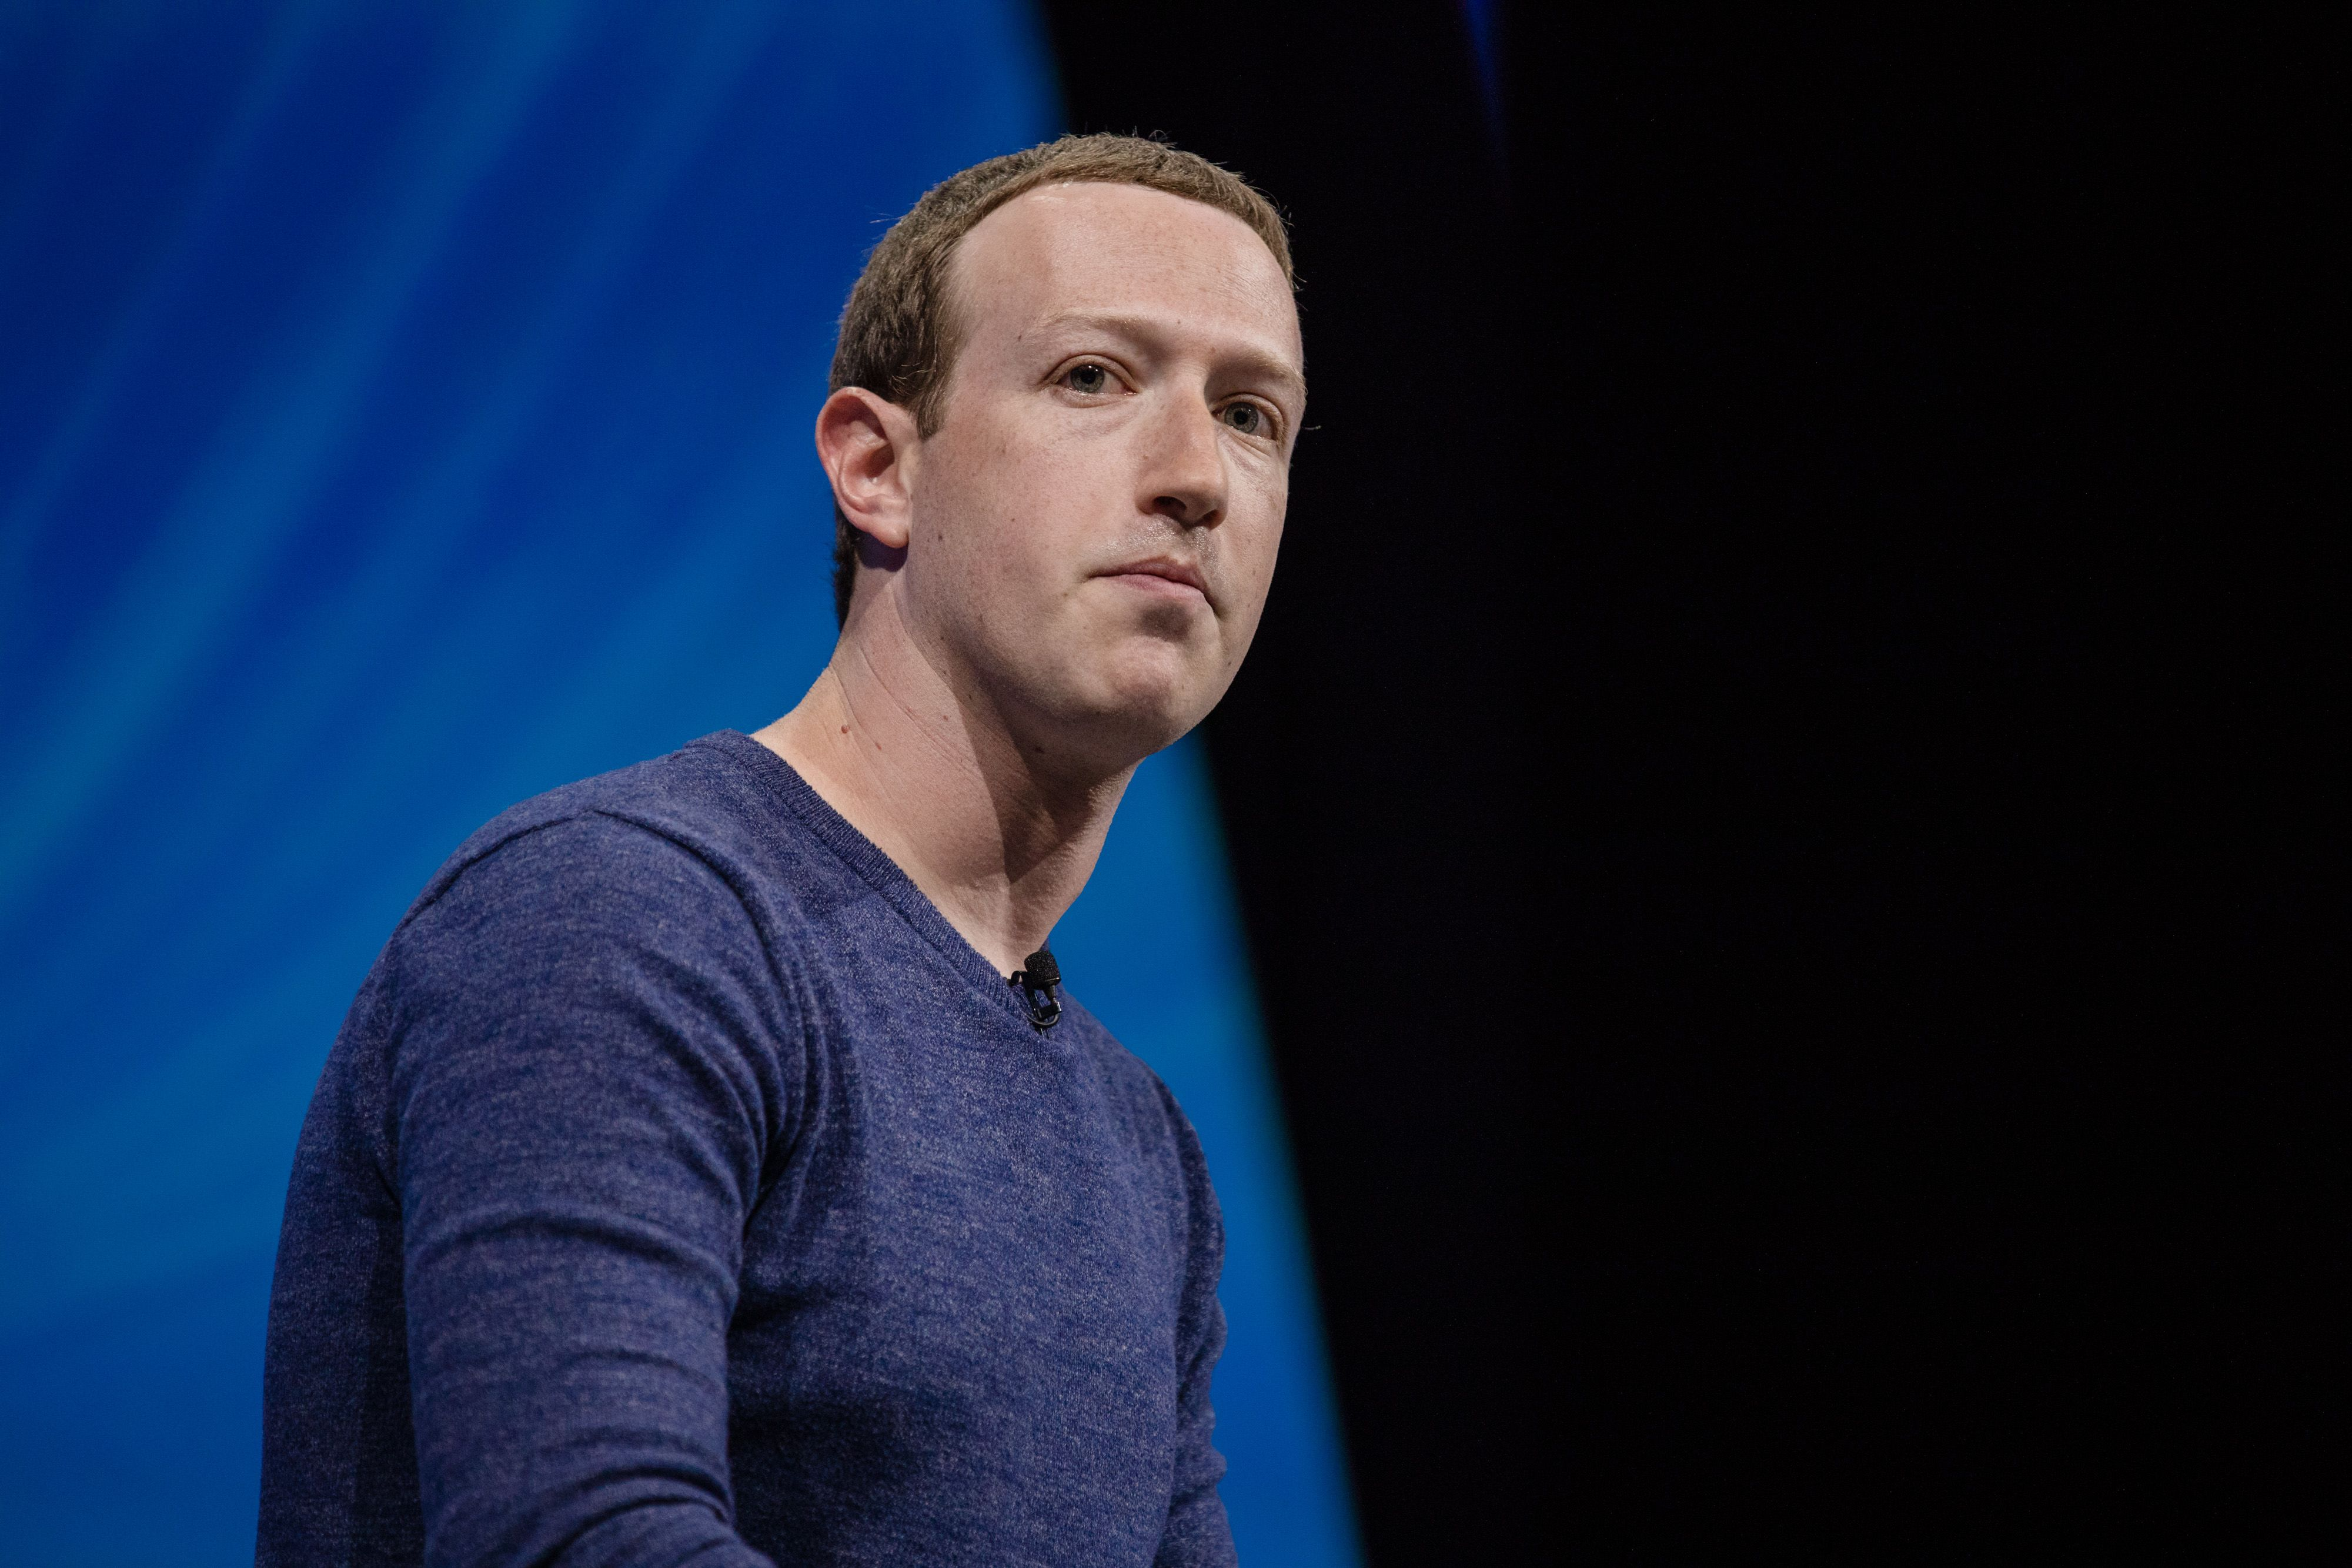 Facebook raises minimum wage to $20 for contractors in top markets